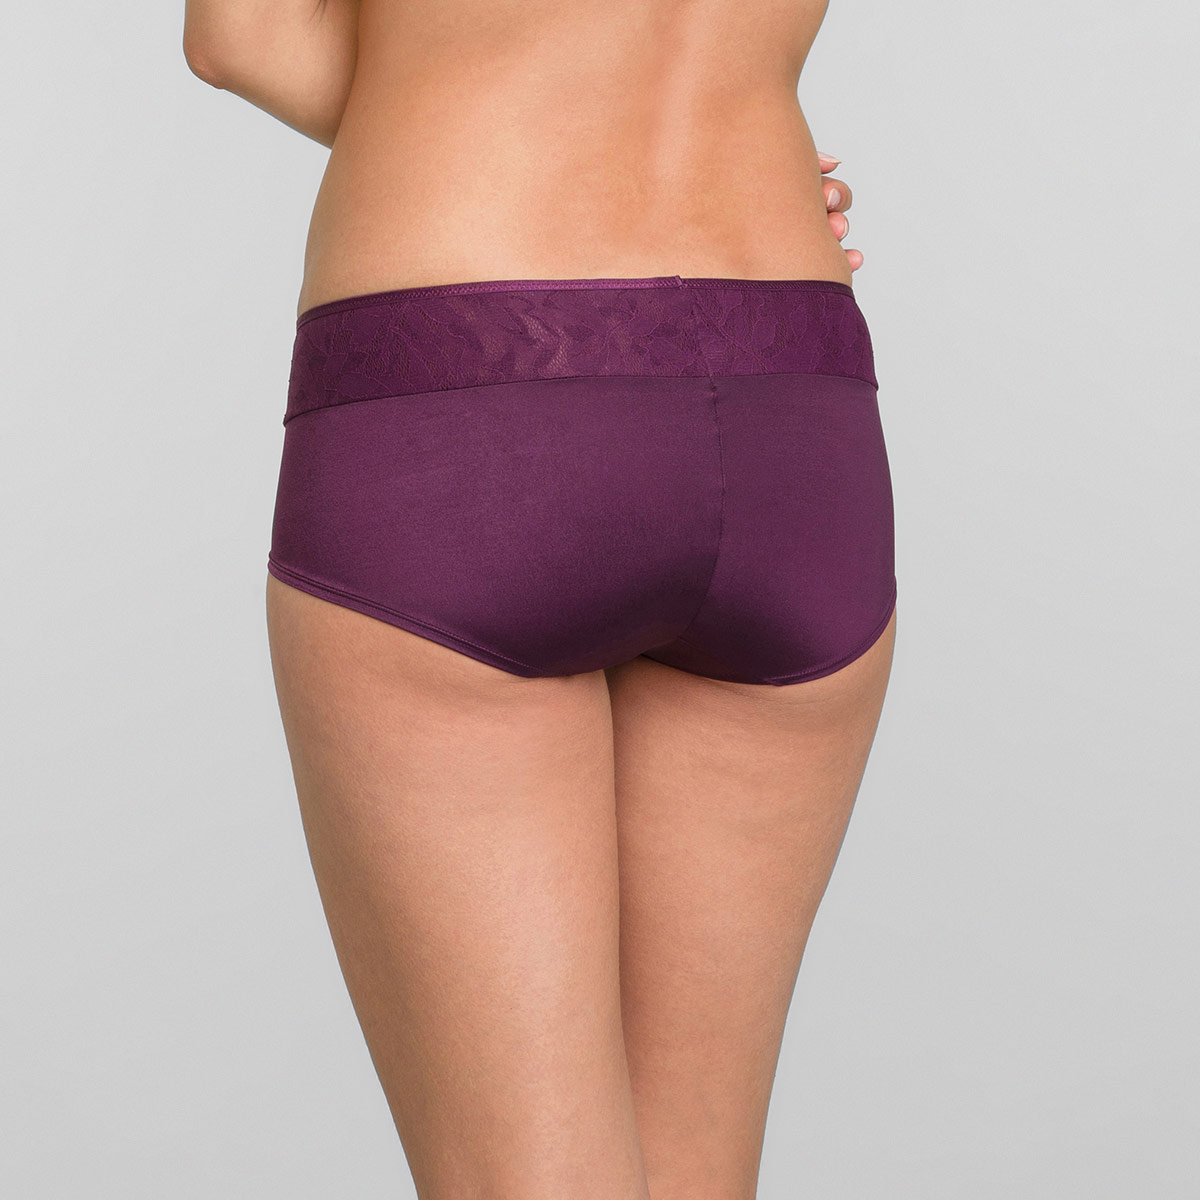 Shorts in Dark Boysenberry Ideal Beauty Lace, , PLAYTEX